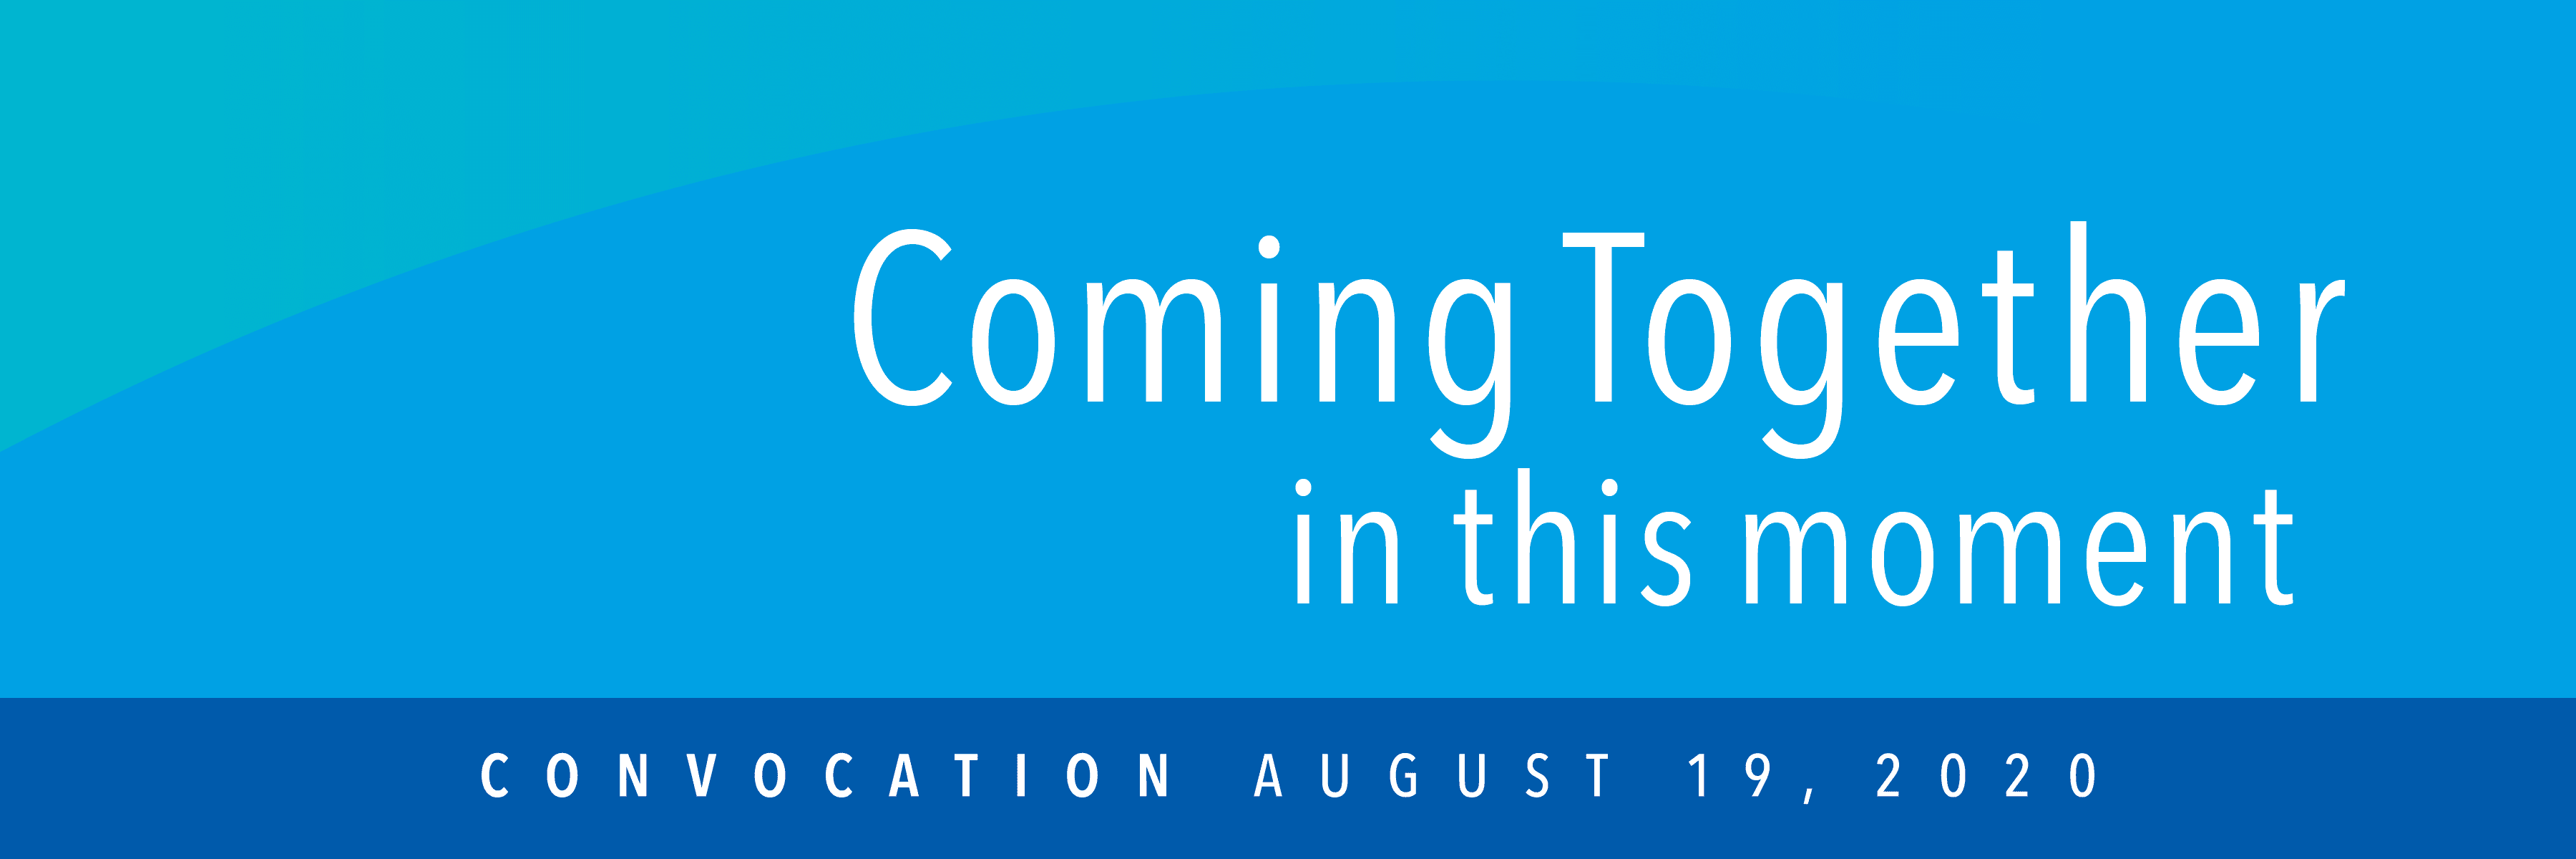 Coming Together in this moment. Convocation August 19, 2020